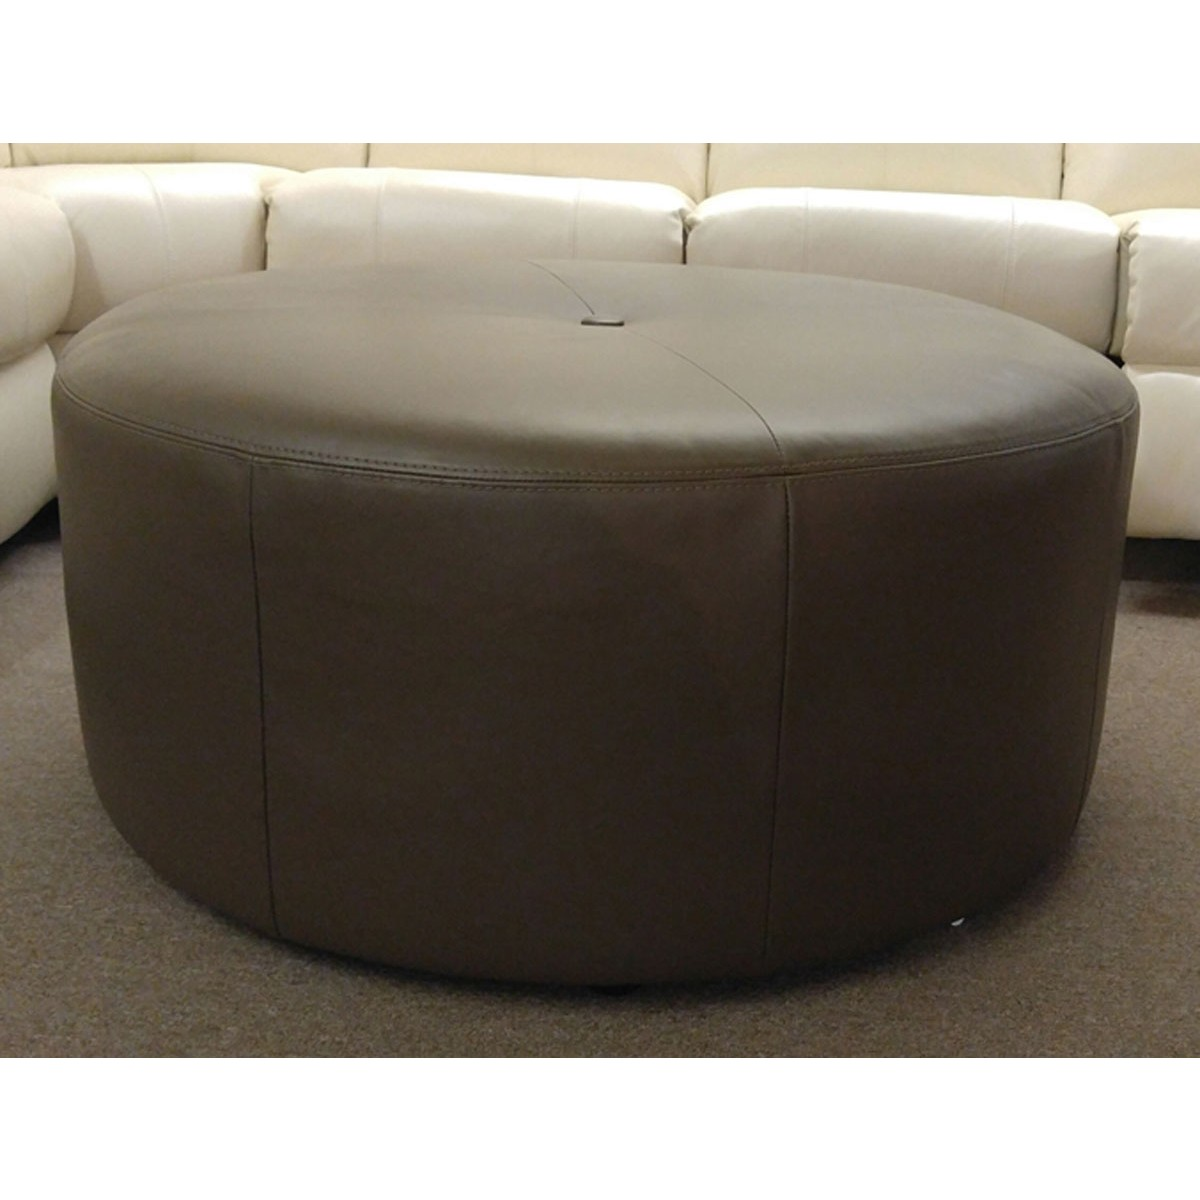 trim detail hs benches ivory room nailhead ottomans ot fabric newport ottoman round wht living products index